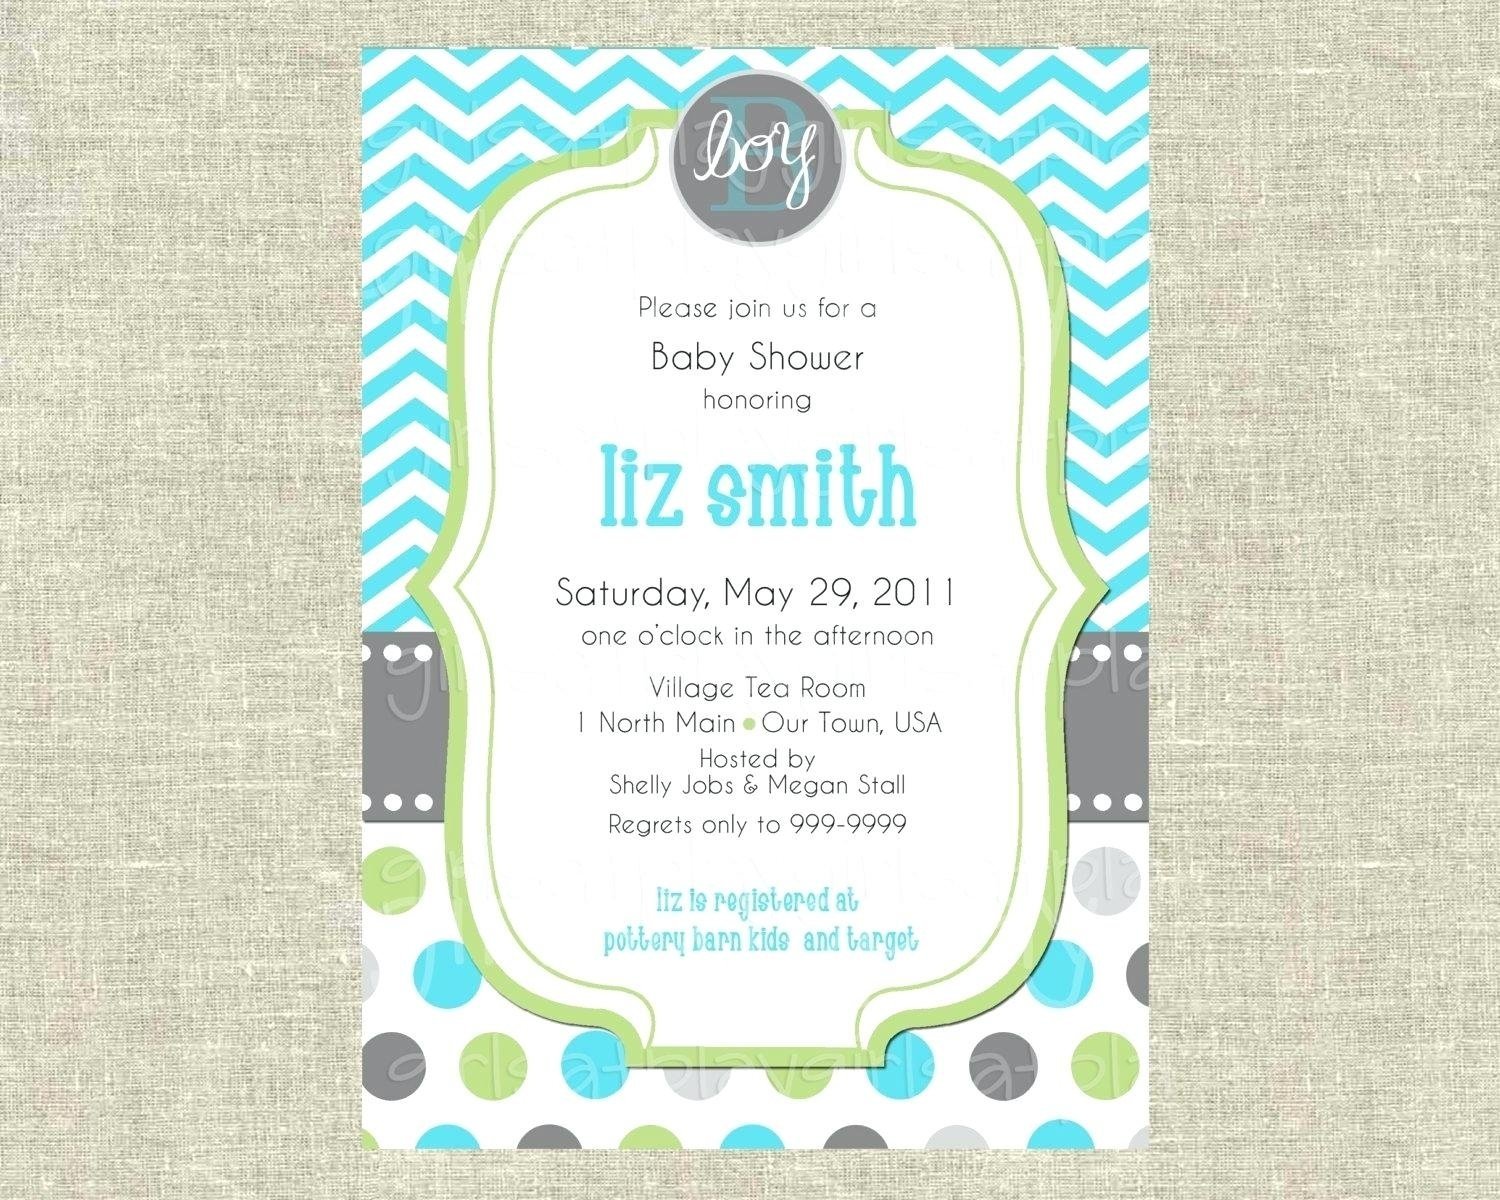 10 Perfect Save The Date Email Ideas template save the date baby shower template invitations ideas girl